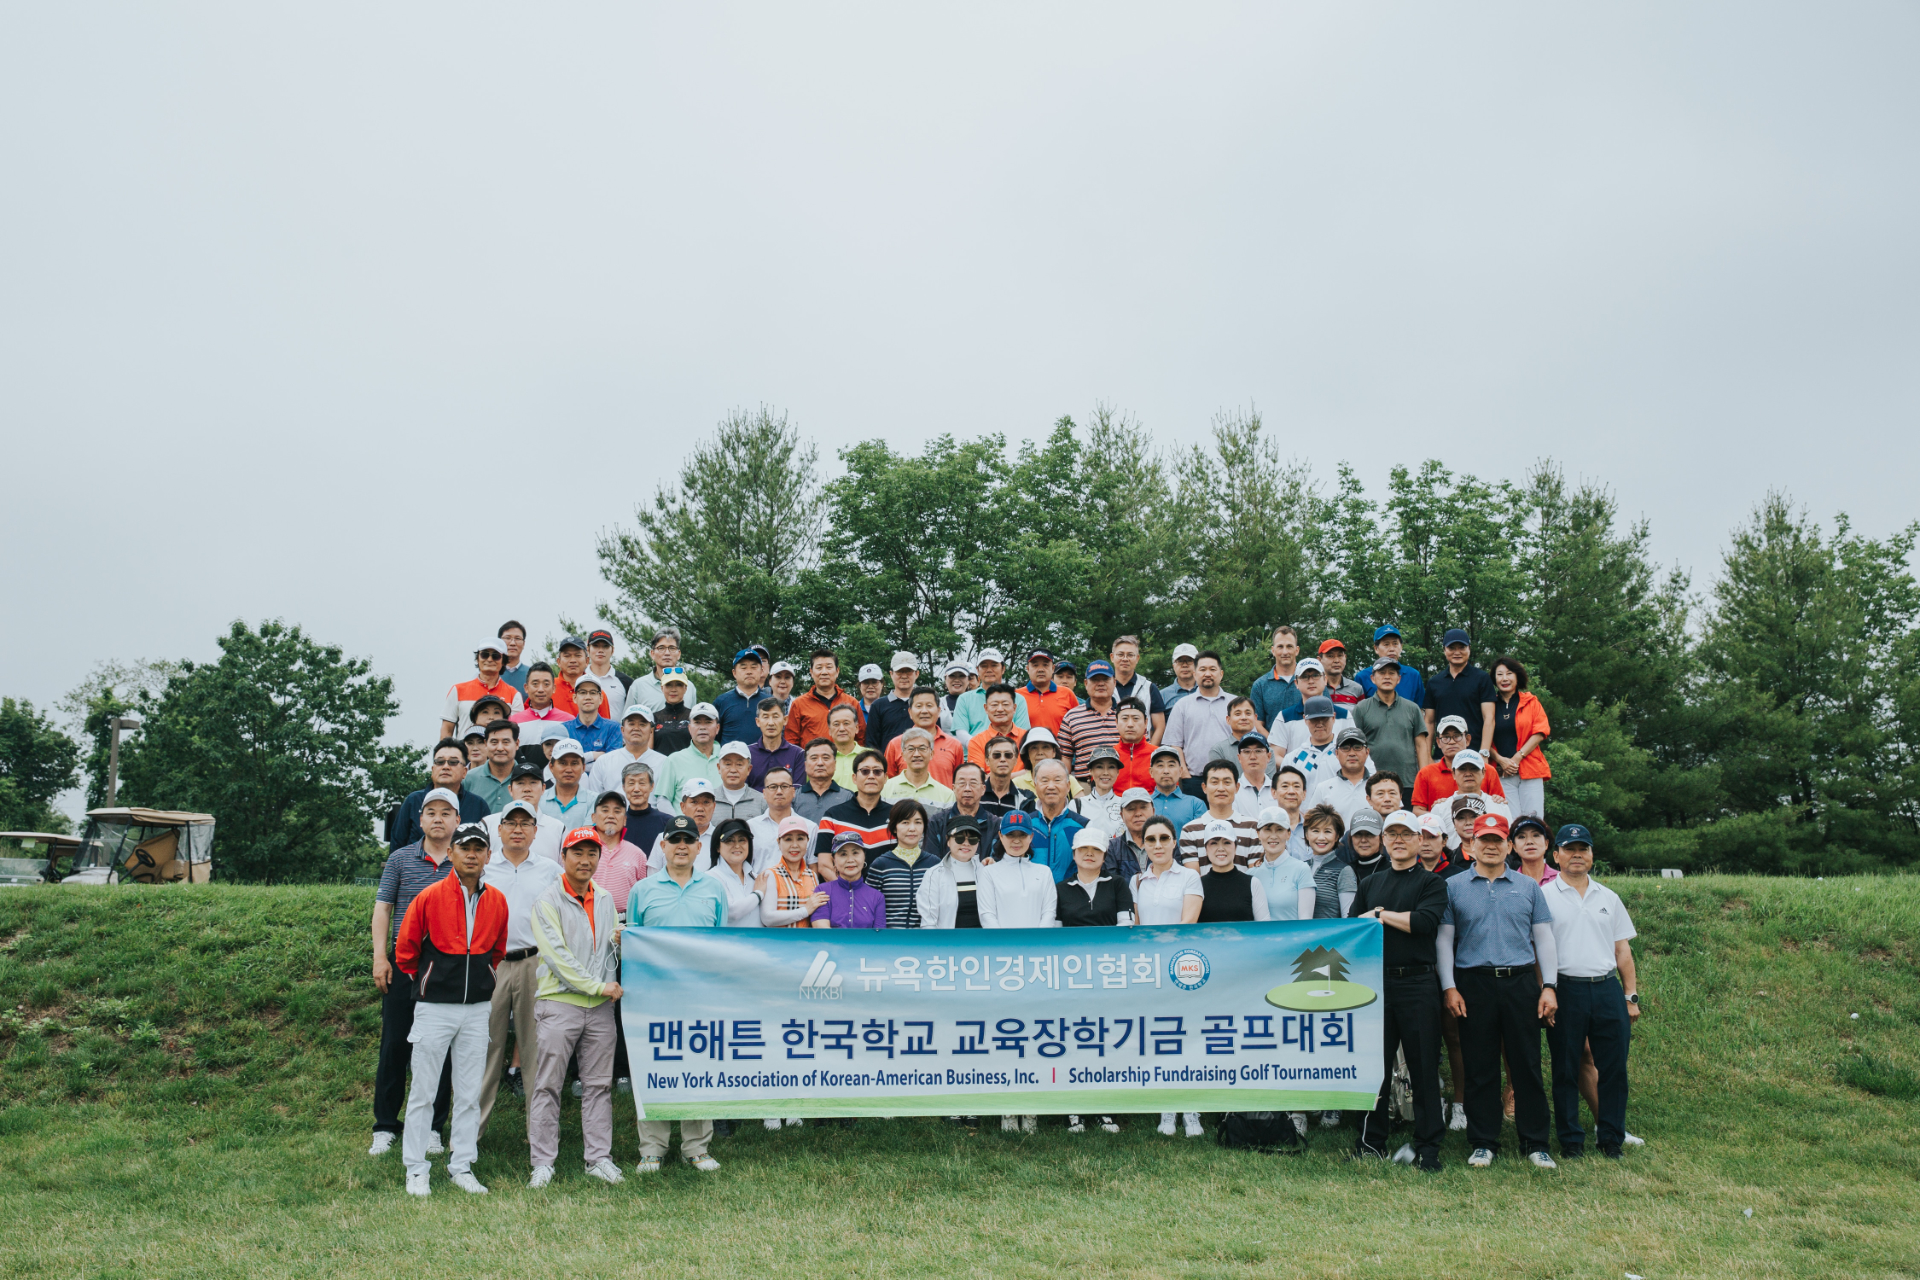 https://nykbi.com/new/wp-content/uploads/2019/07/190619-Scholarship-Fundraising-Golf-Tournament-009.jpg